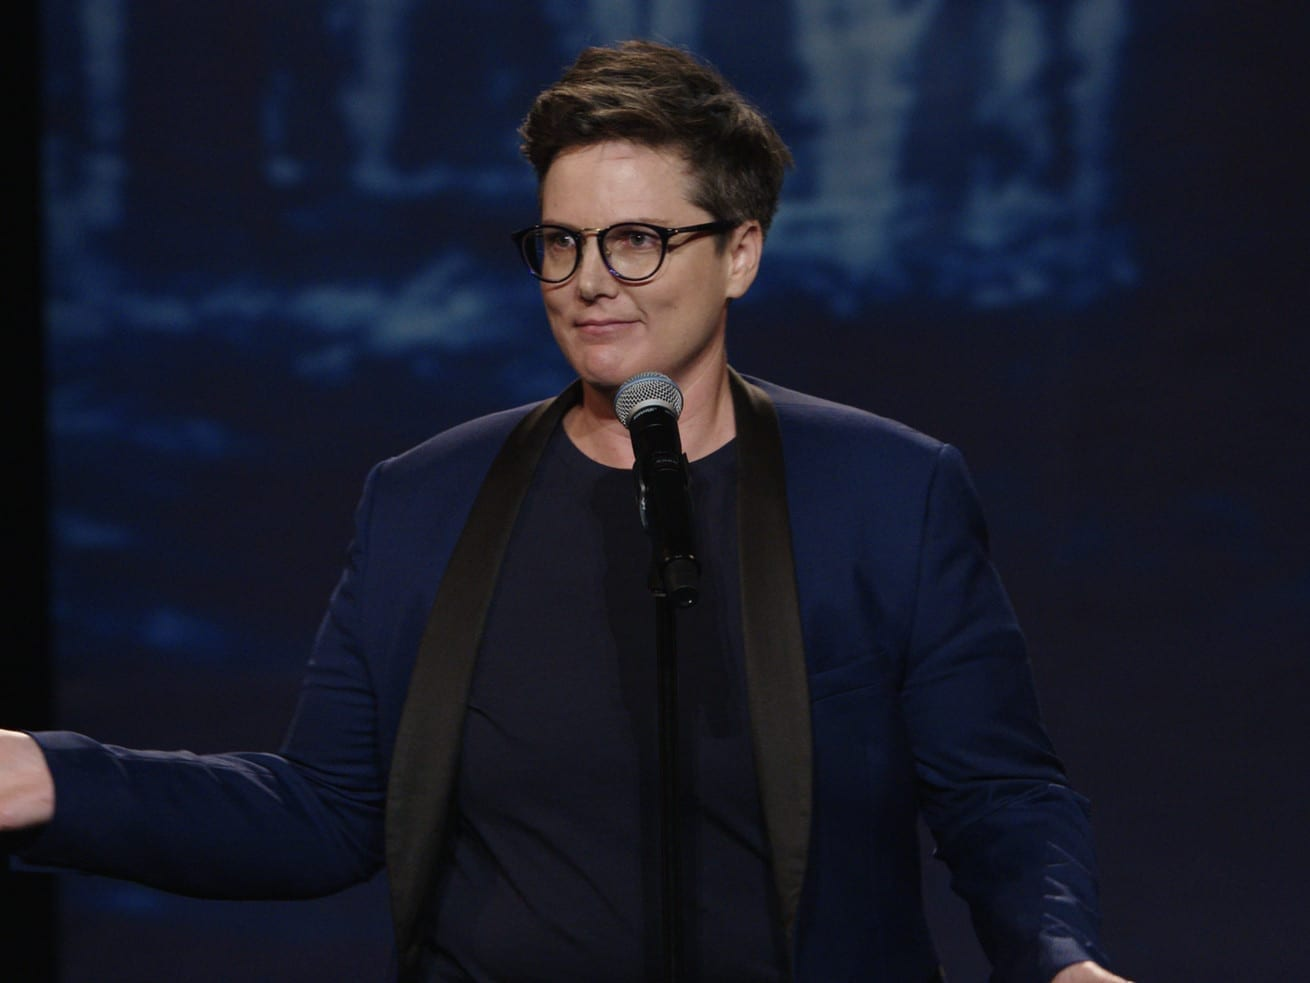 HannahGadsby_10.0 Why Hannah Gadsby's searing comedy special Nanette has upended comedy for good